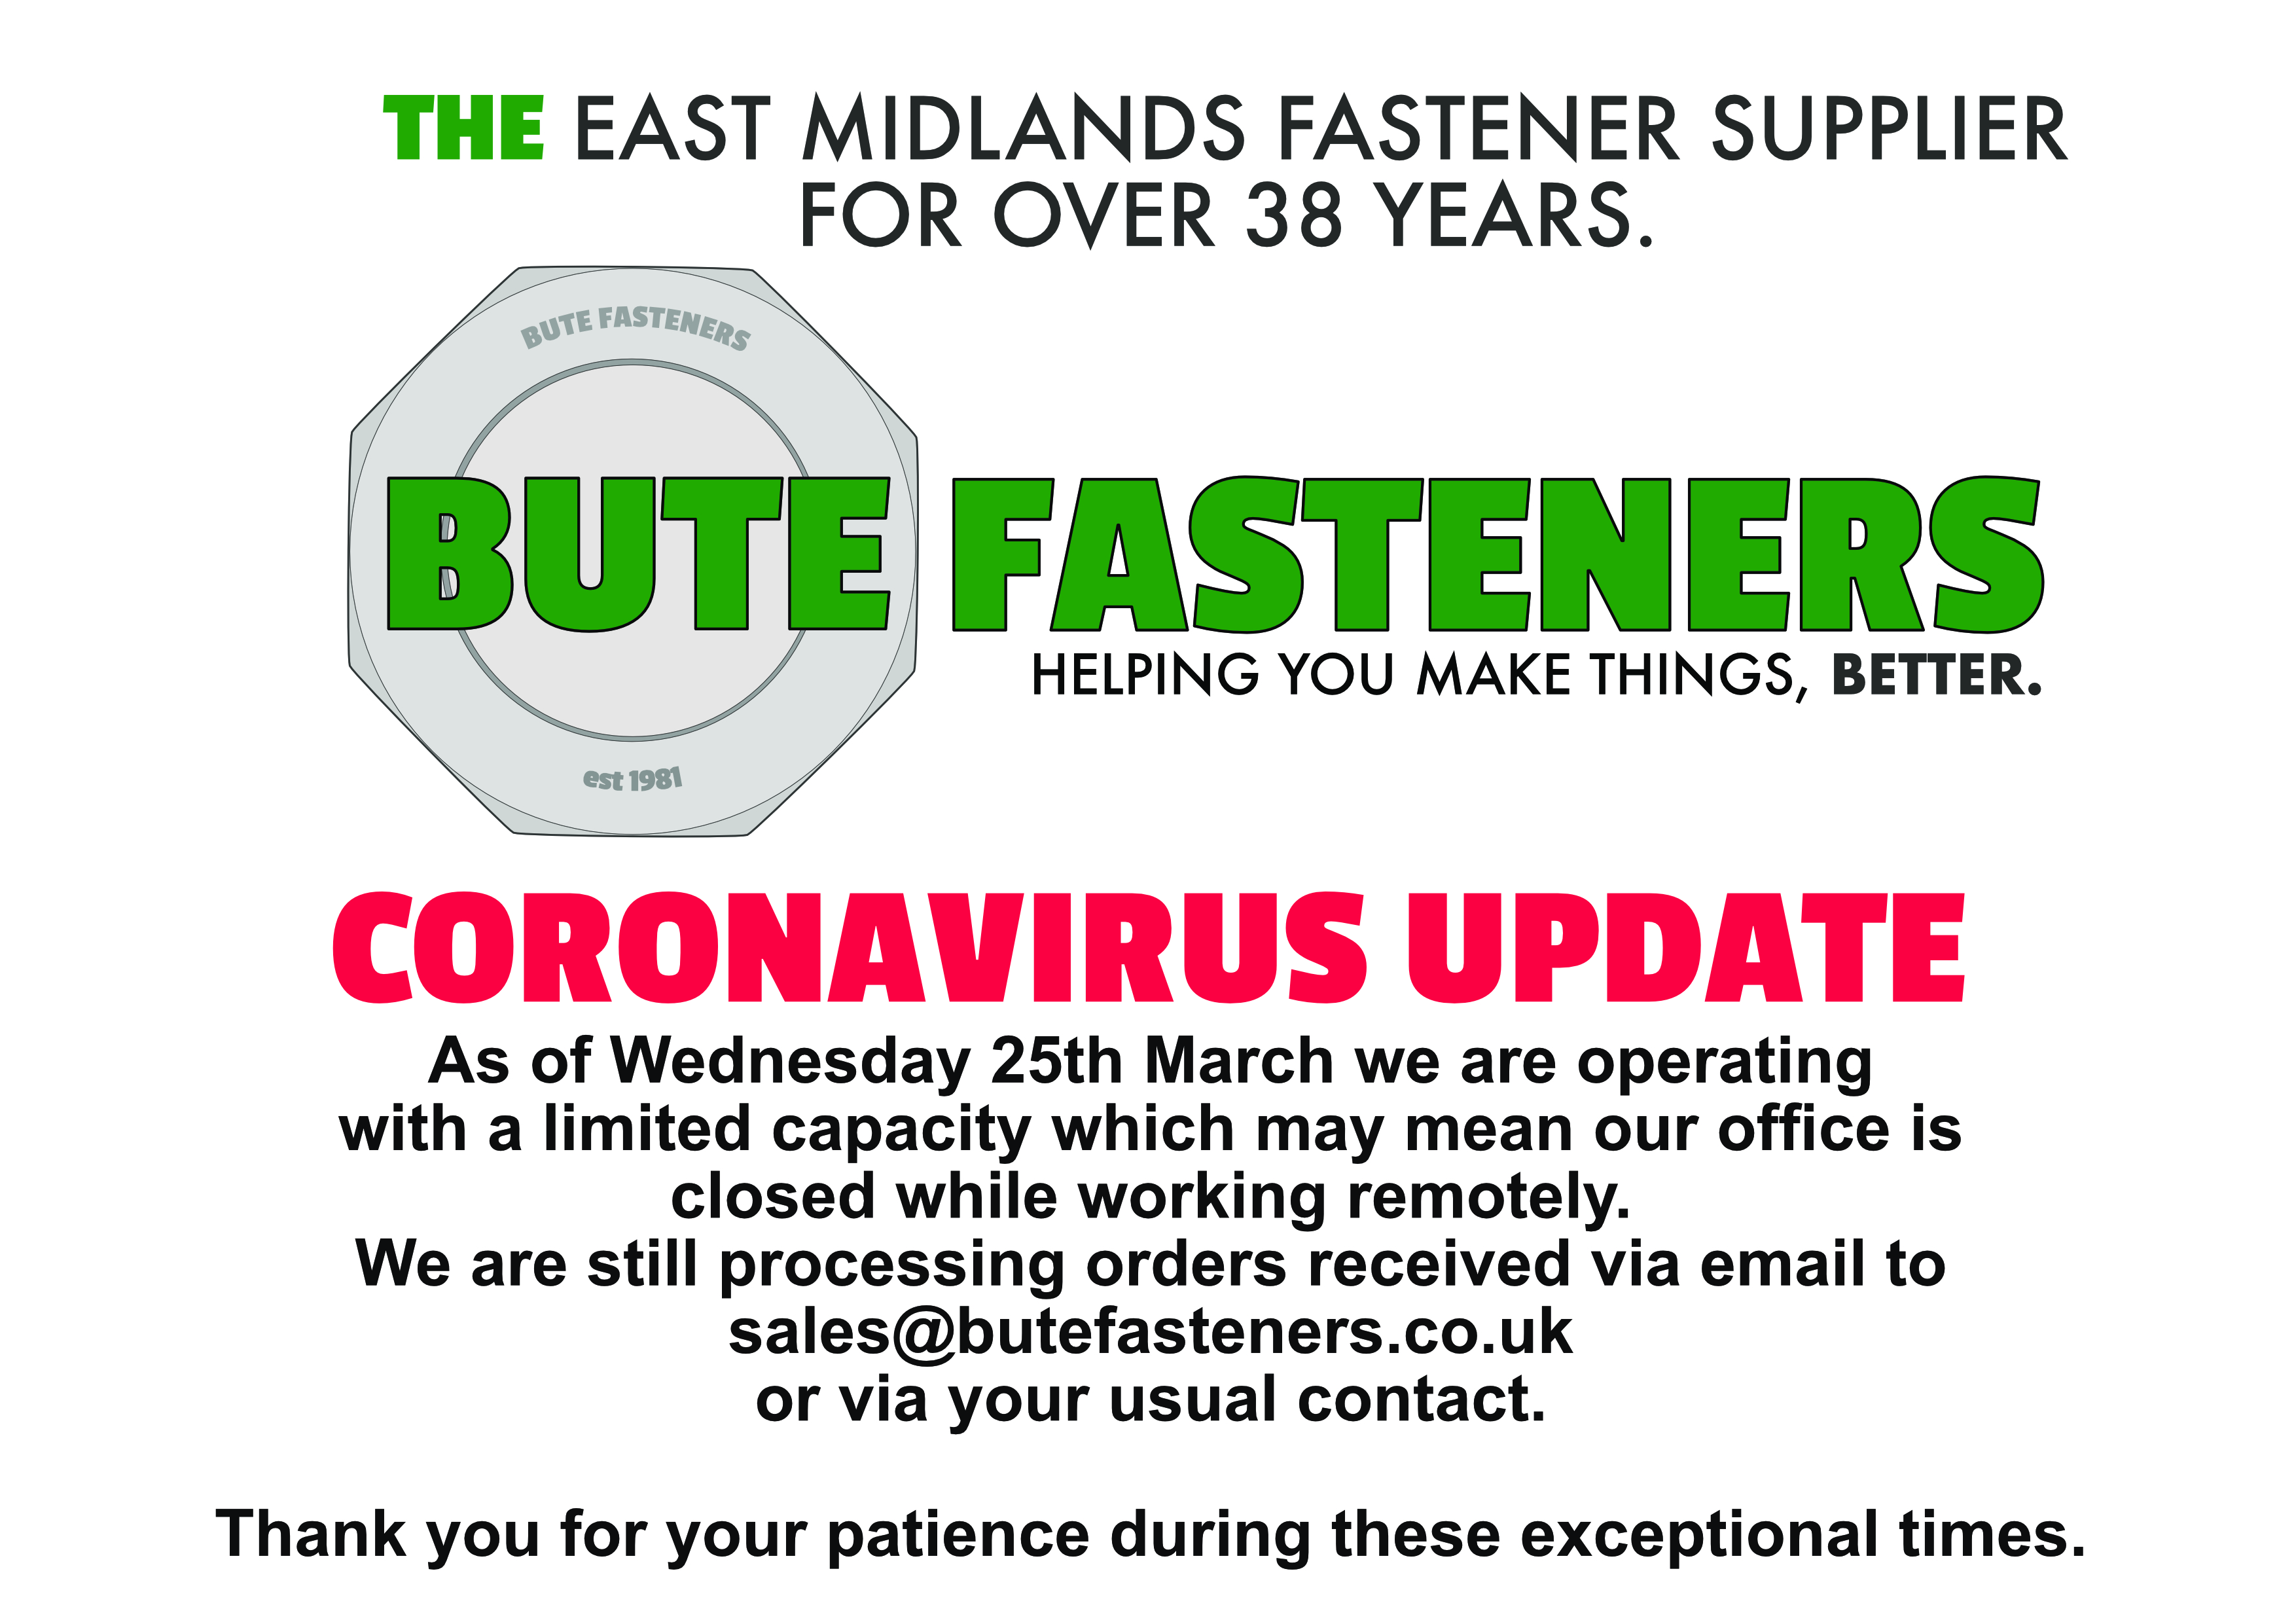 Bute Fasteners - THE East Midlands fastener supplier for over 35 years. Helping you make things, better. Our new site is coming soon